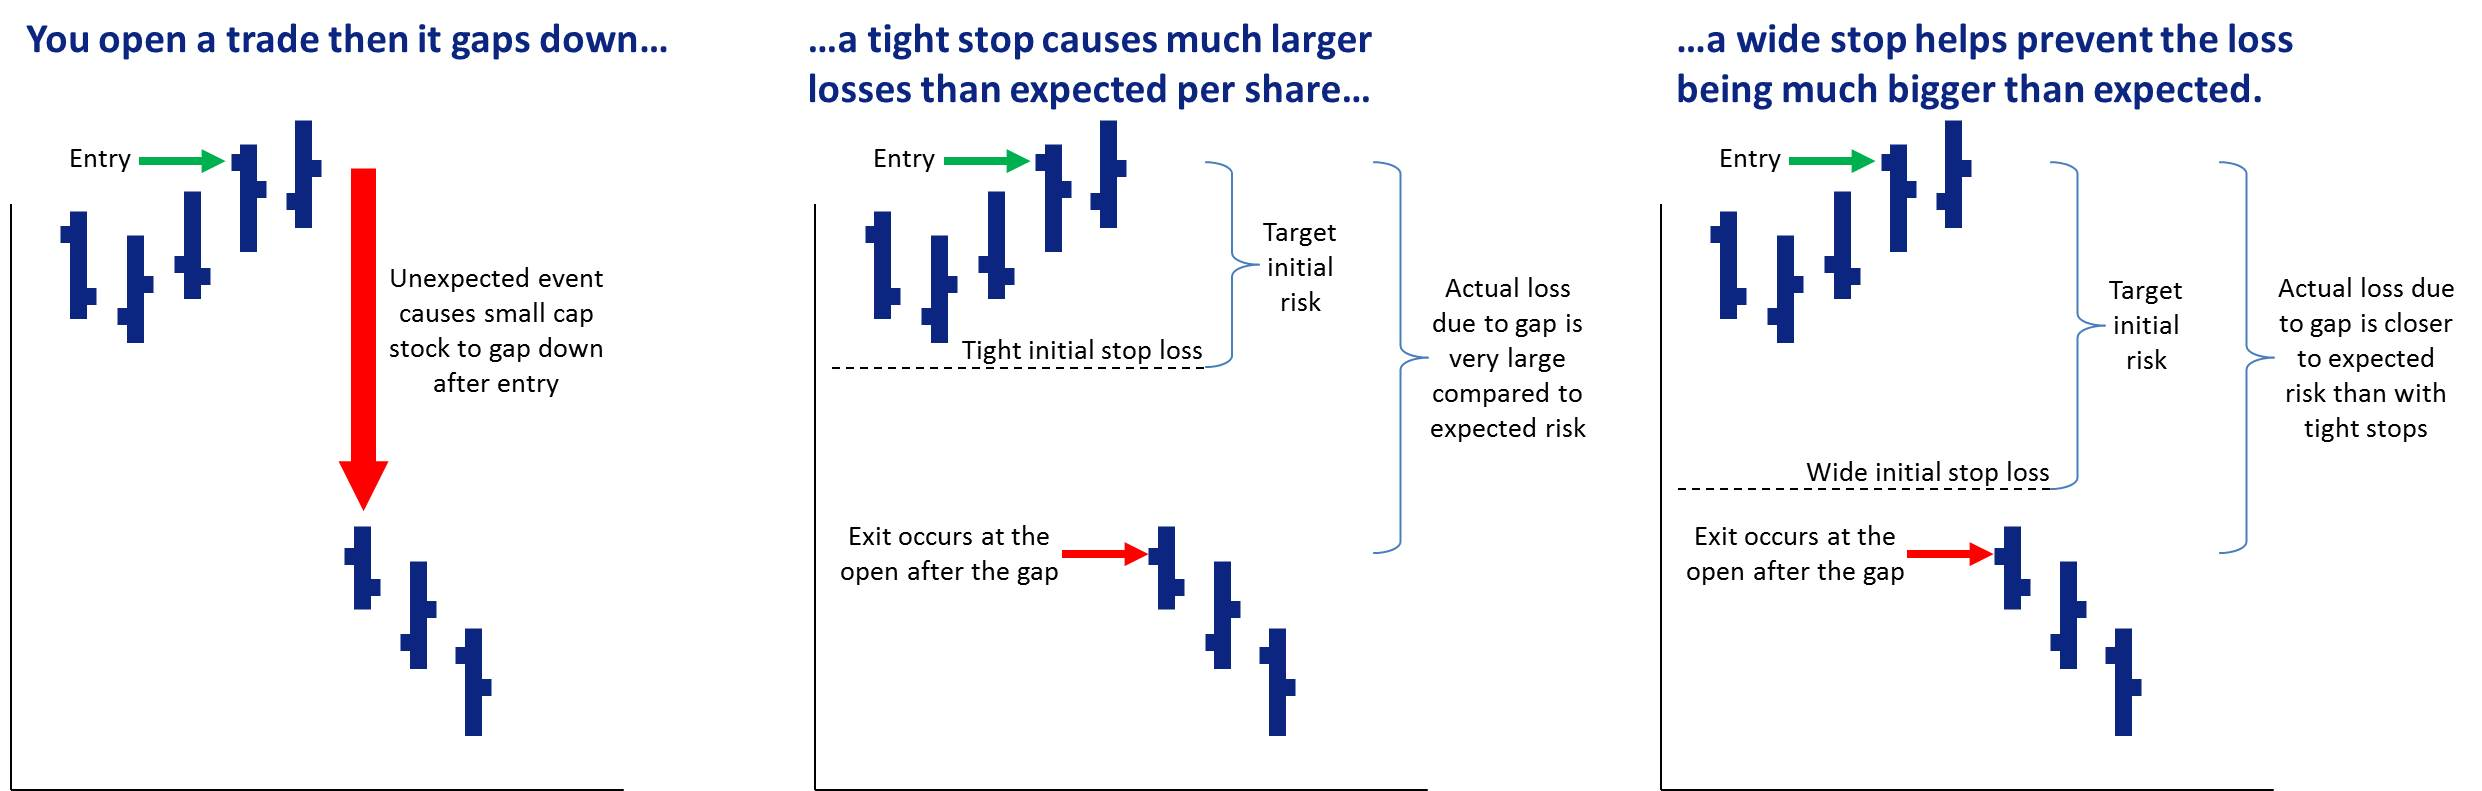 Small cap trading plans should consider using wide initial stop losses to reduce the impact of gaps.